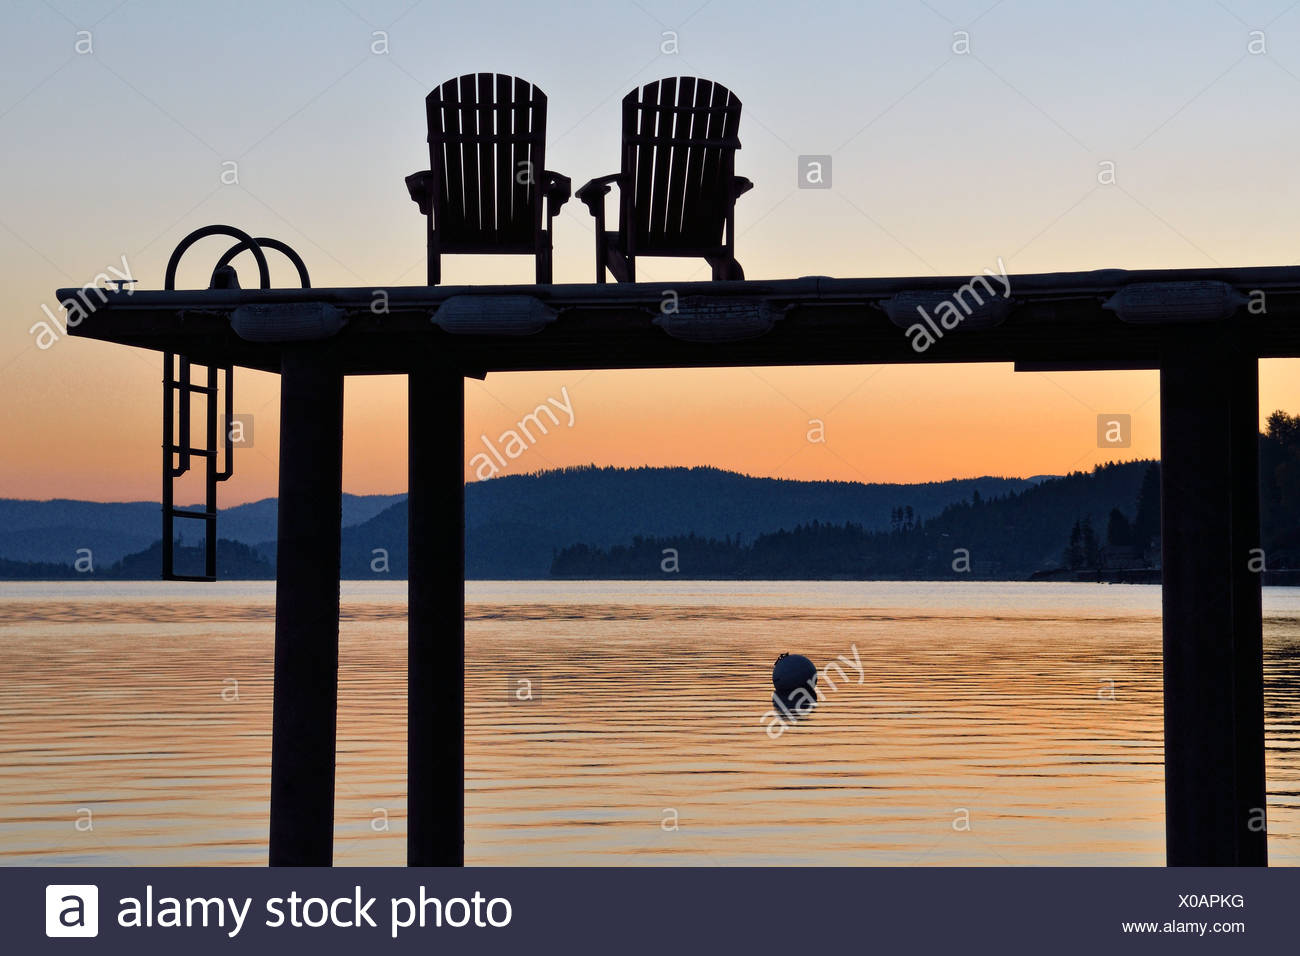 Jetty with chairs, Lake Pend Oreille, Sandpoint, Idaho, USA - Stock Image